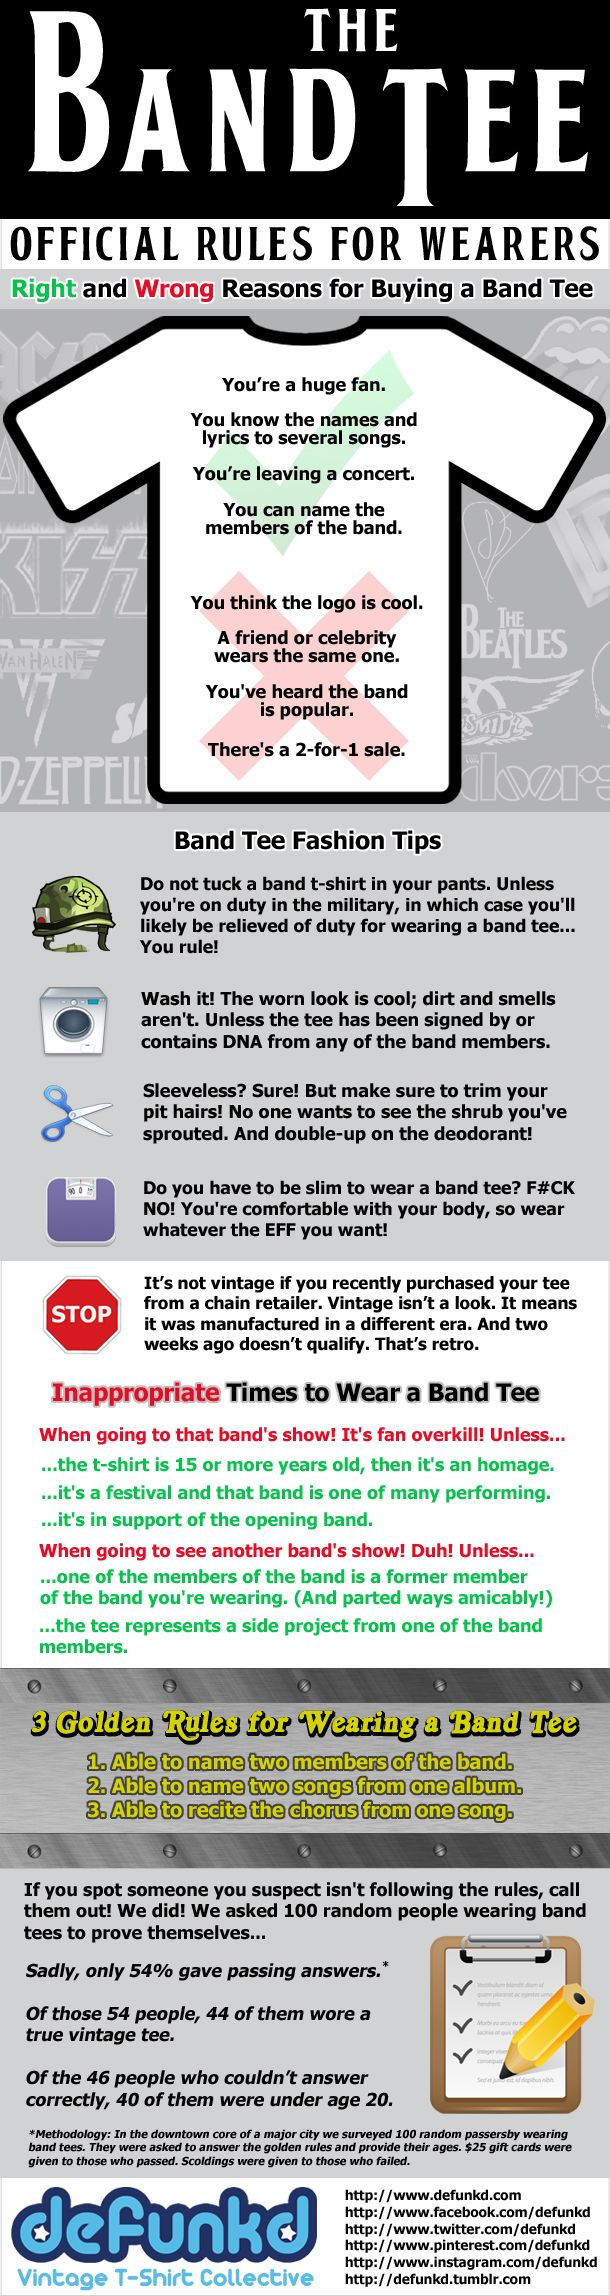 Rules for Wearing a Band Tee...although I think it's ok to wear the t shirt to their concert..give your opinion!